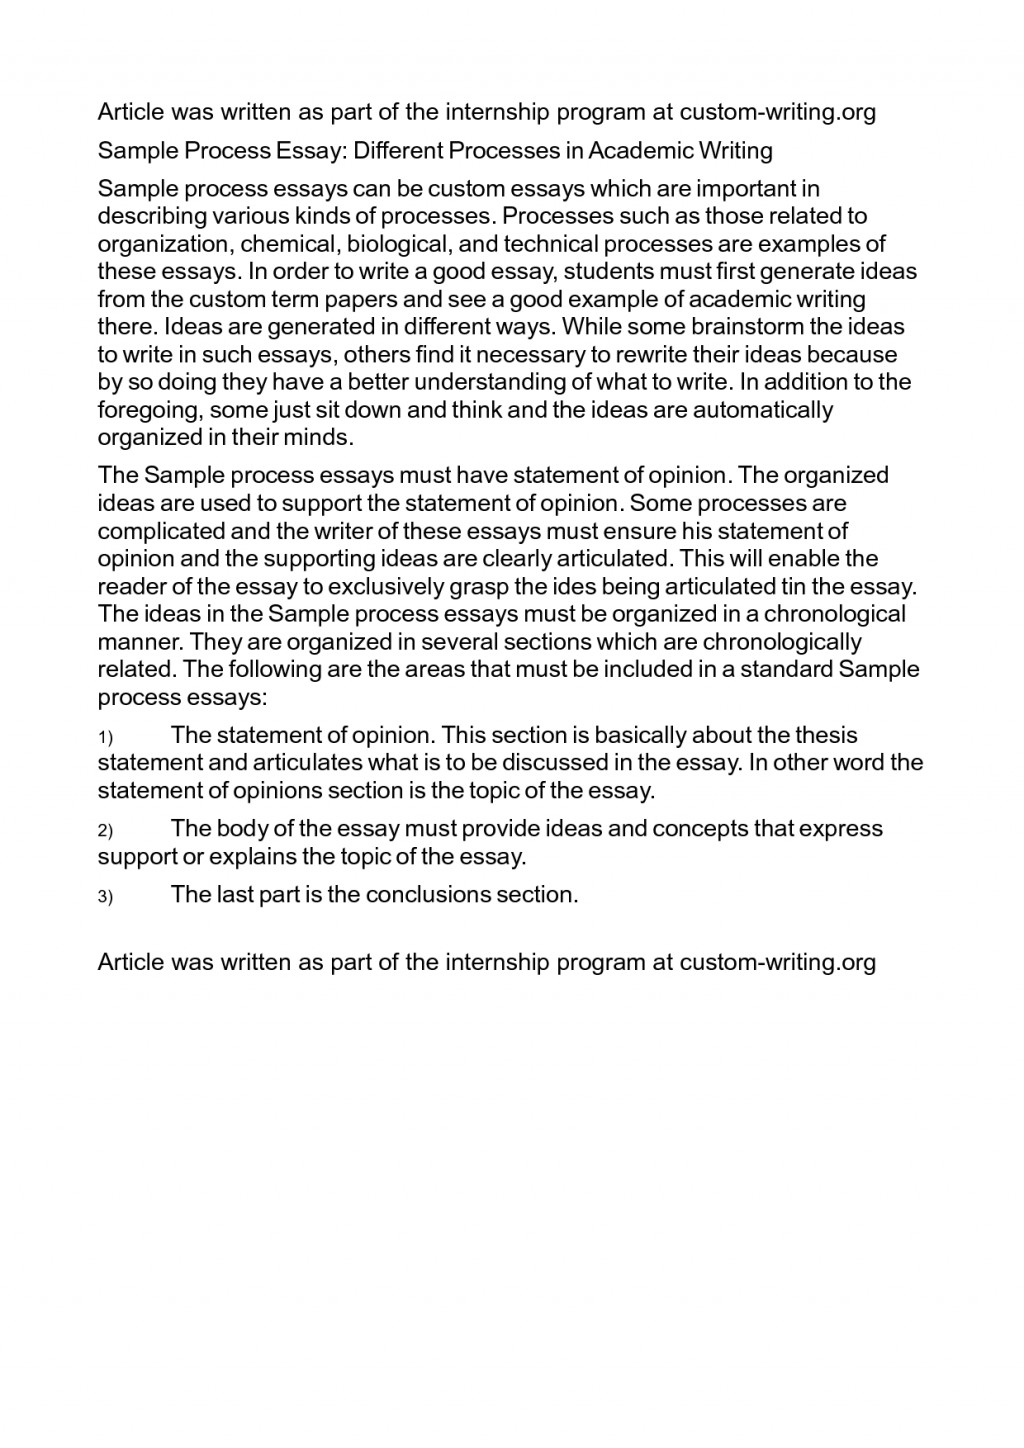 003 How To Write Process Essay Analysis Topics Co Sophisticated 3nprh History Top A Ielts Thesis Statement For Large